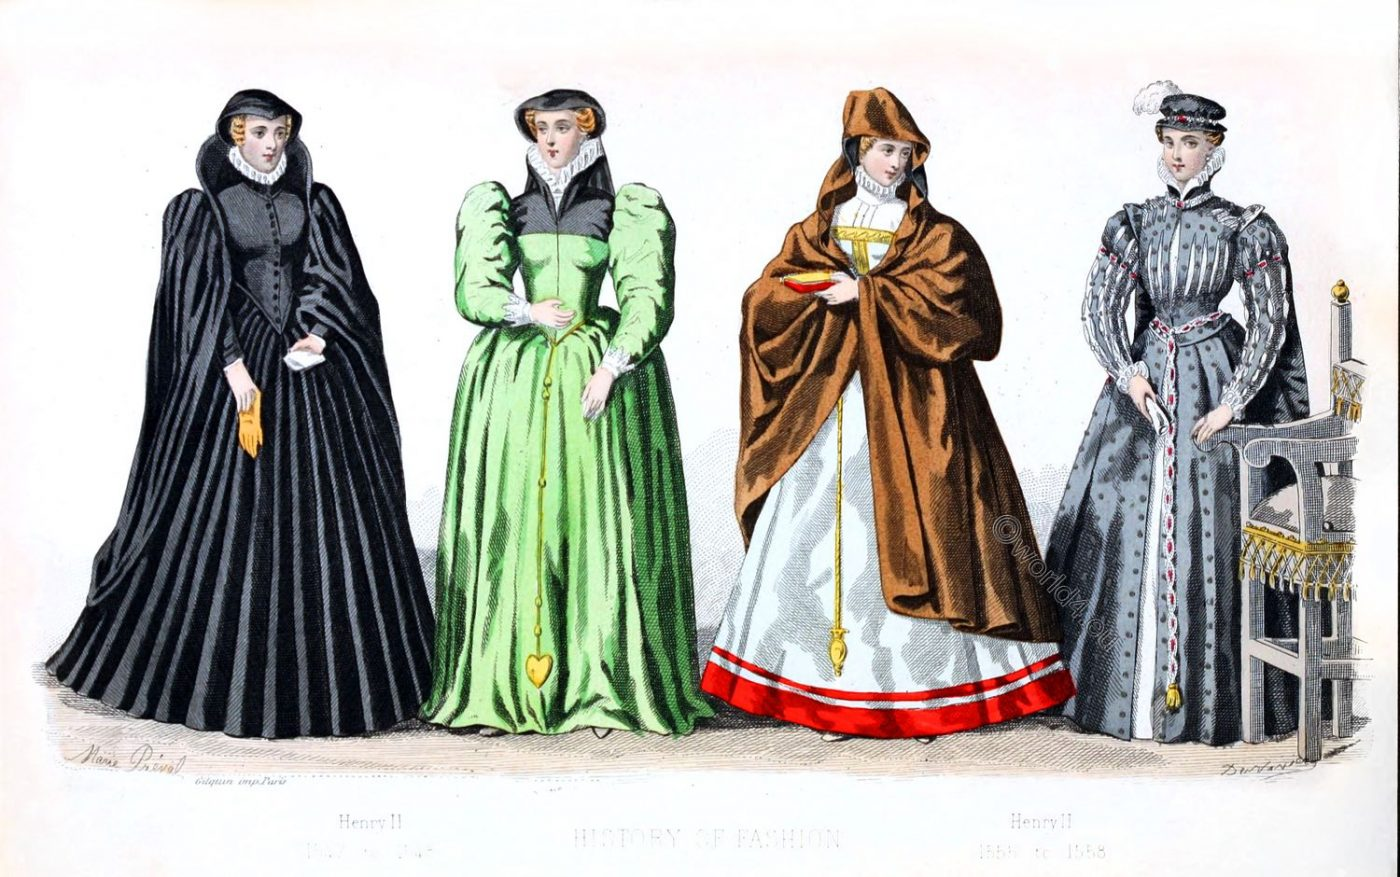 Renaissance, fashion history, 16th century